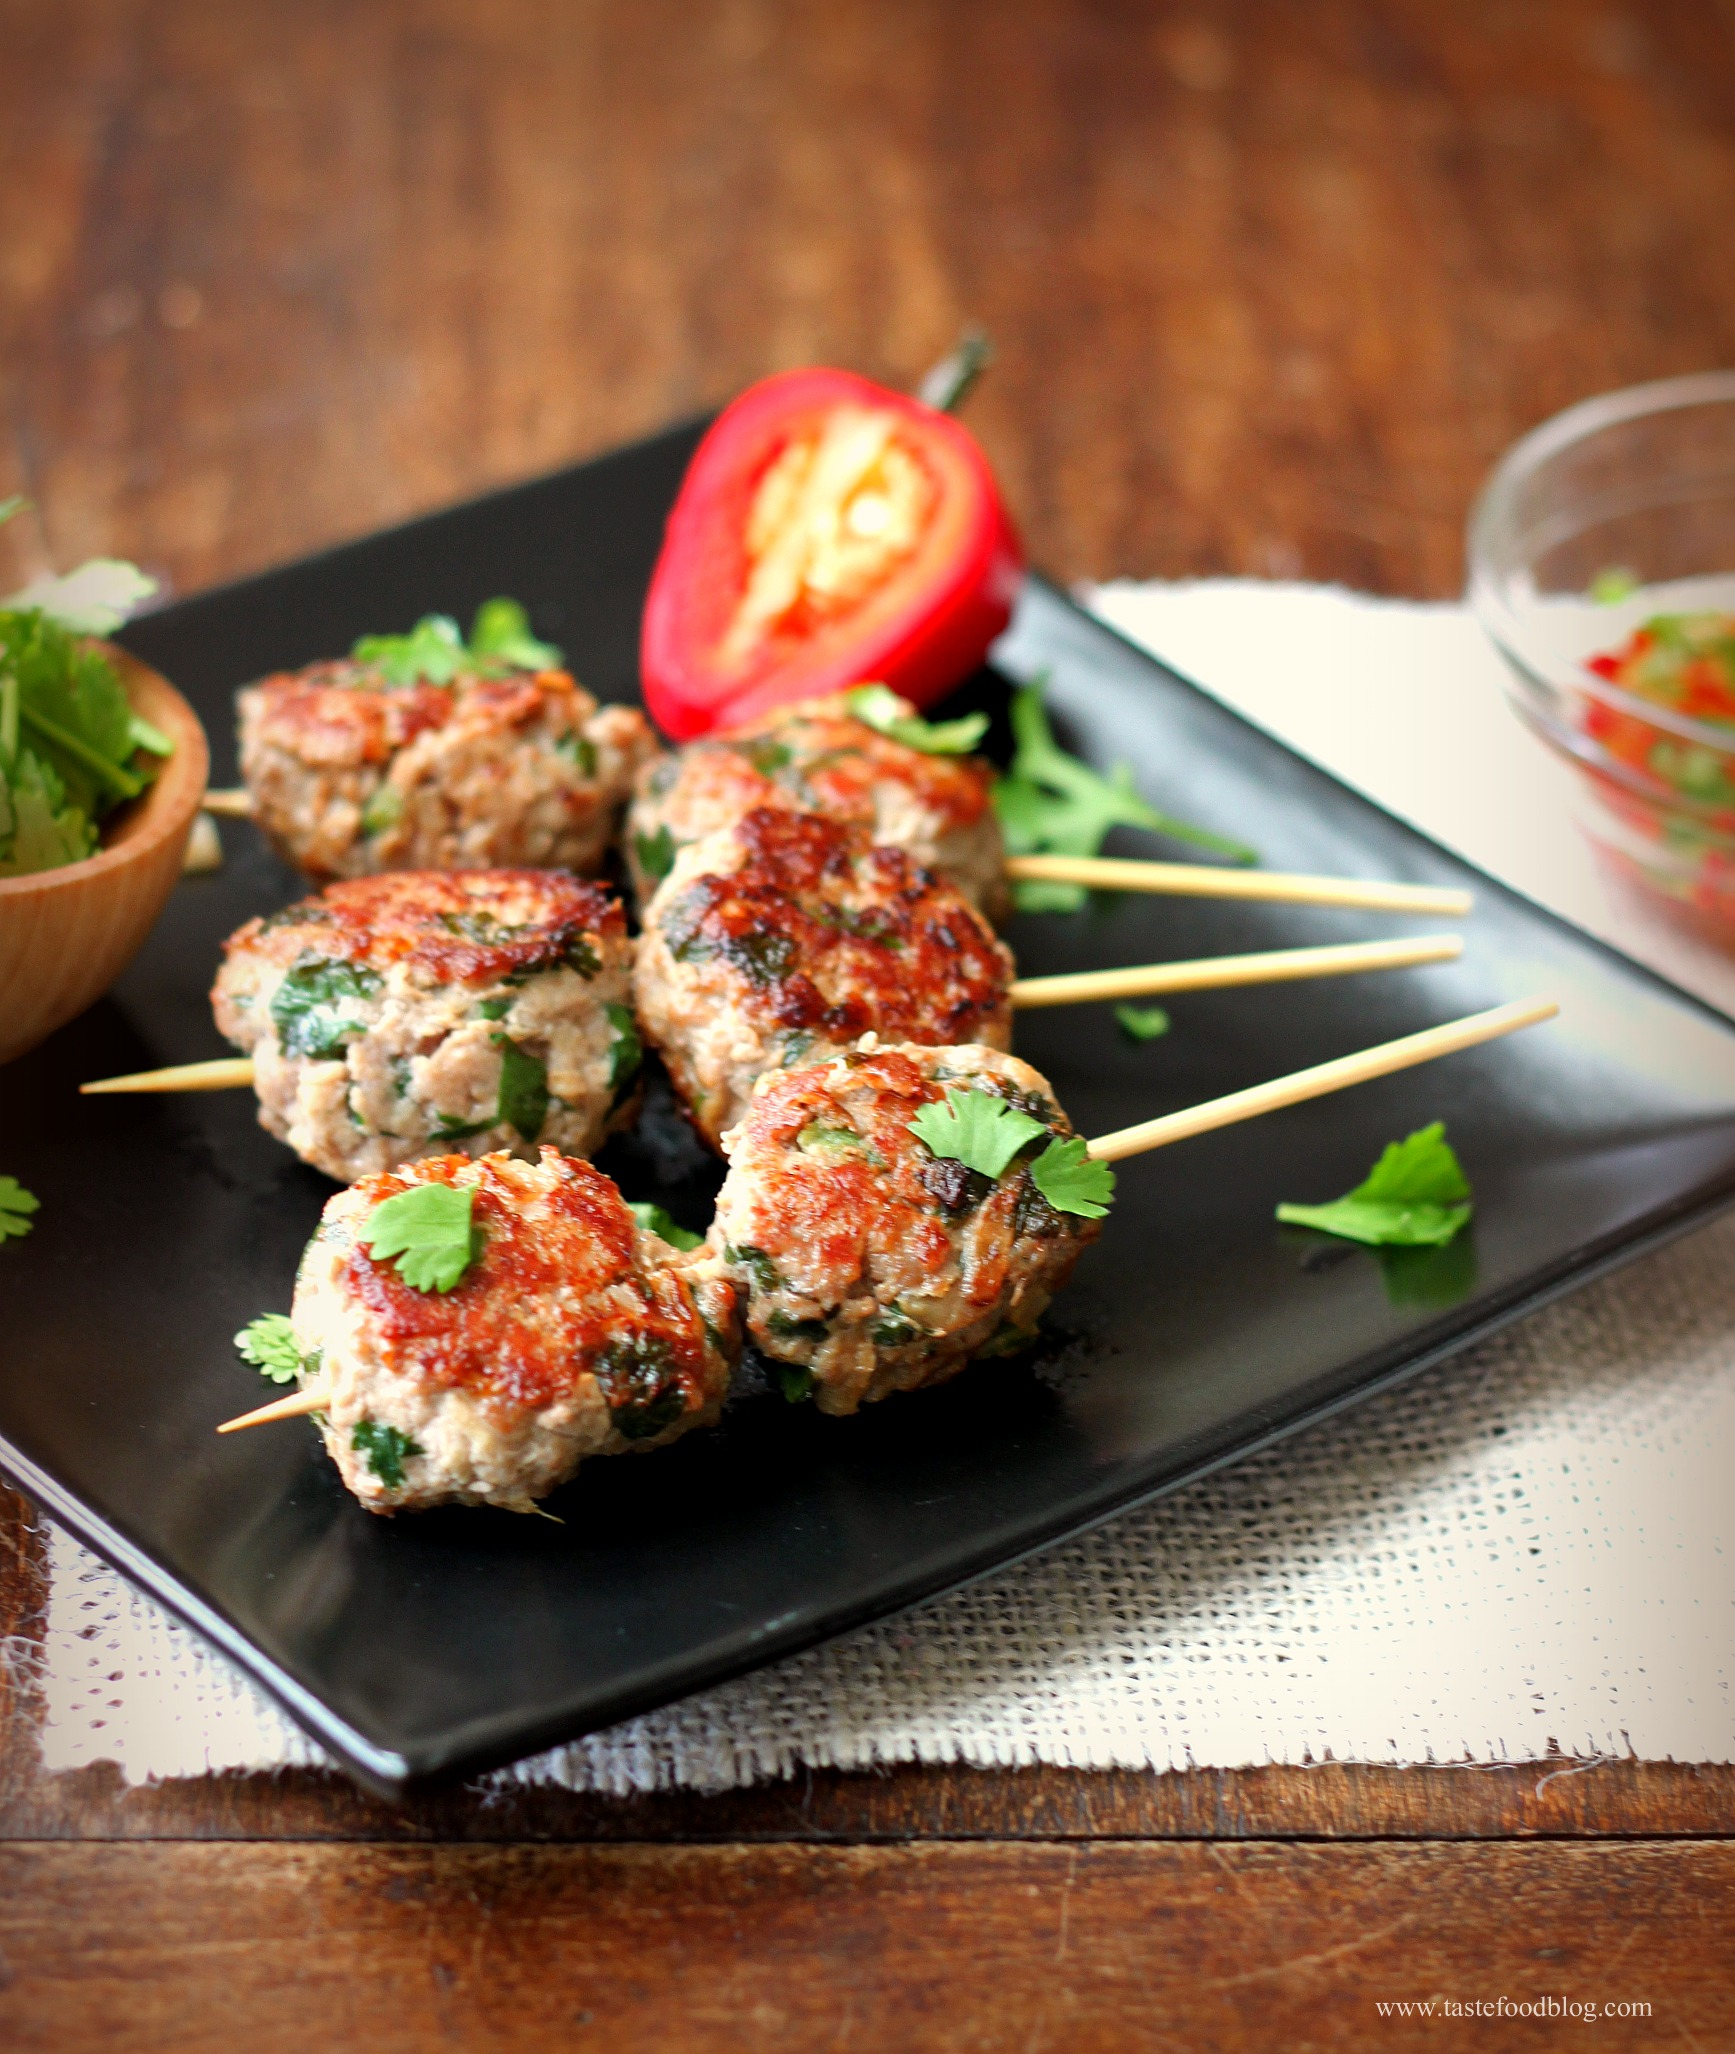 Riveting On A Chinese Meatballs Tastefood Food On A Stick Fair Food On A Stick Images A Recipe nice food Food On A Stick